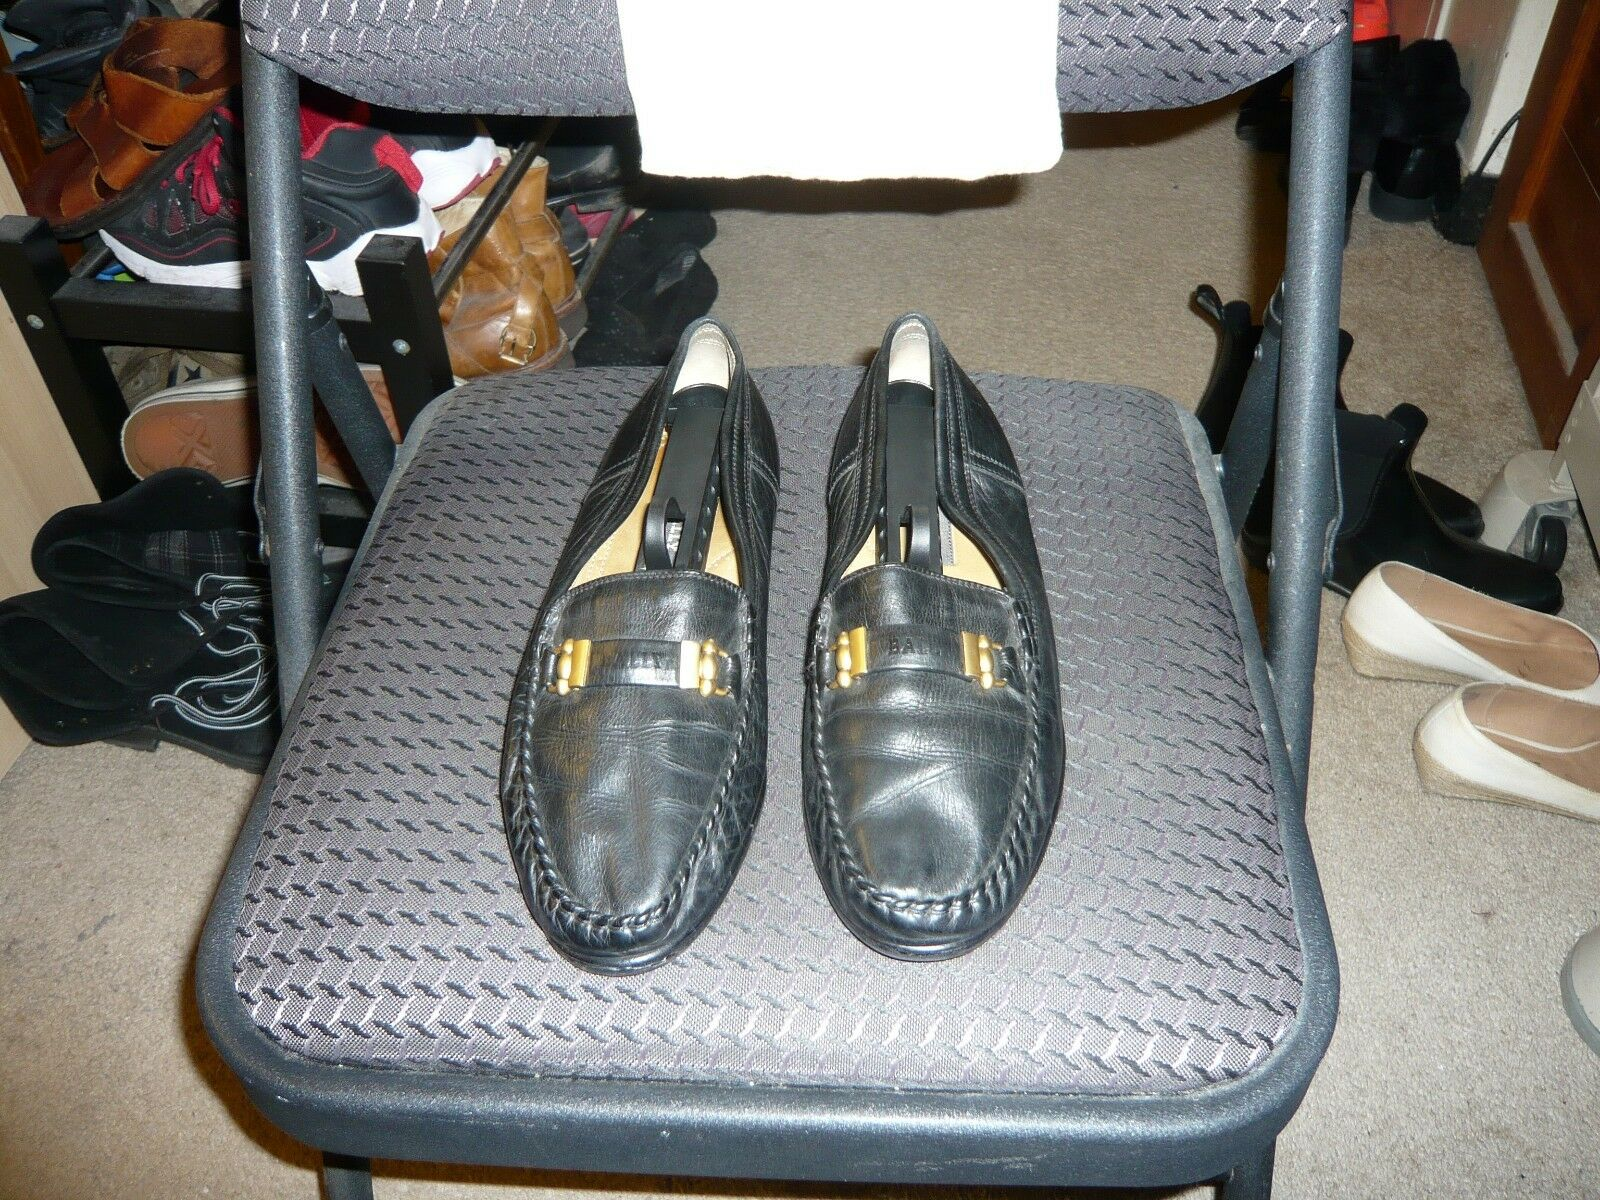 Bally of Switzerland Black Calf Leather Moccasin, Size IT 7, US 8 M W/Dust Bag